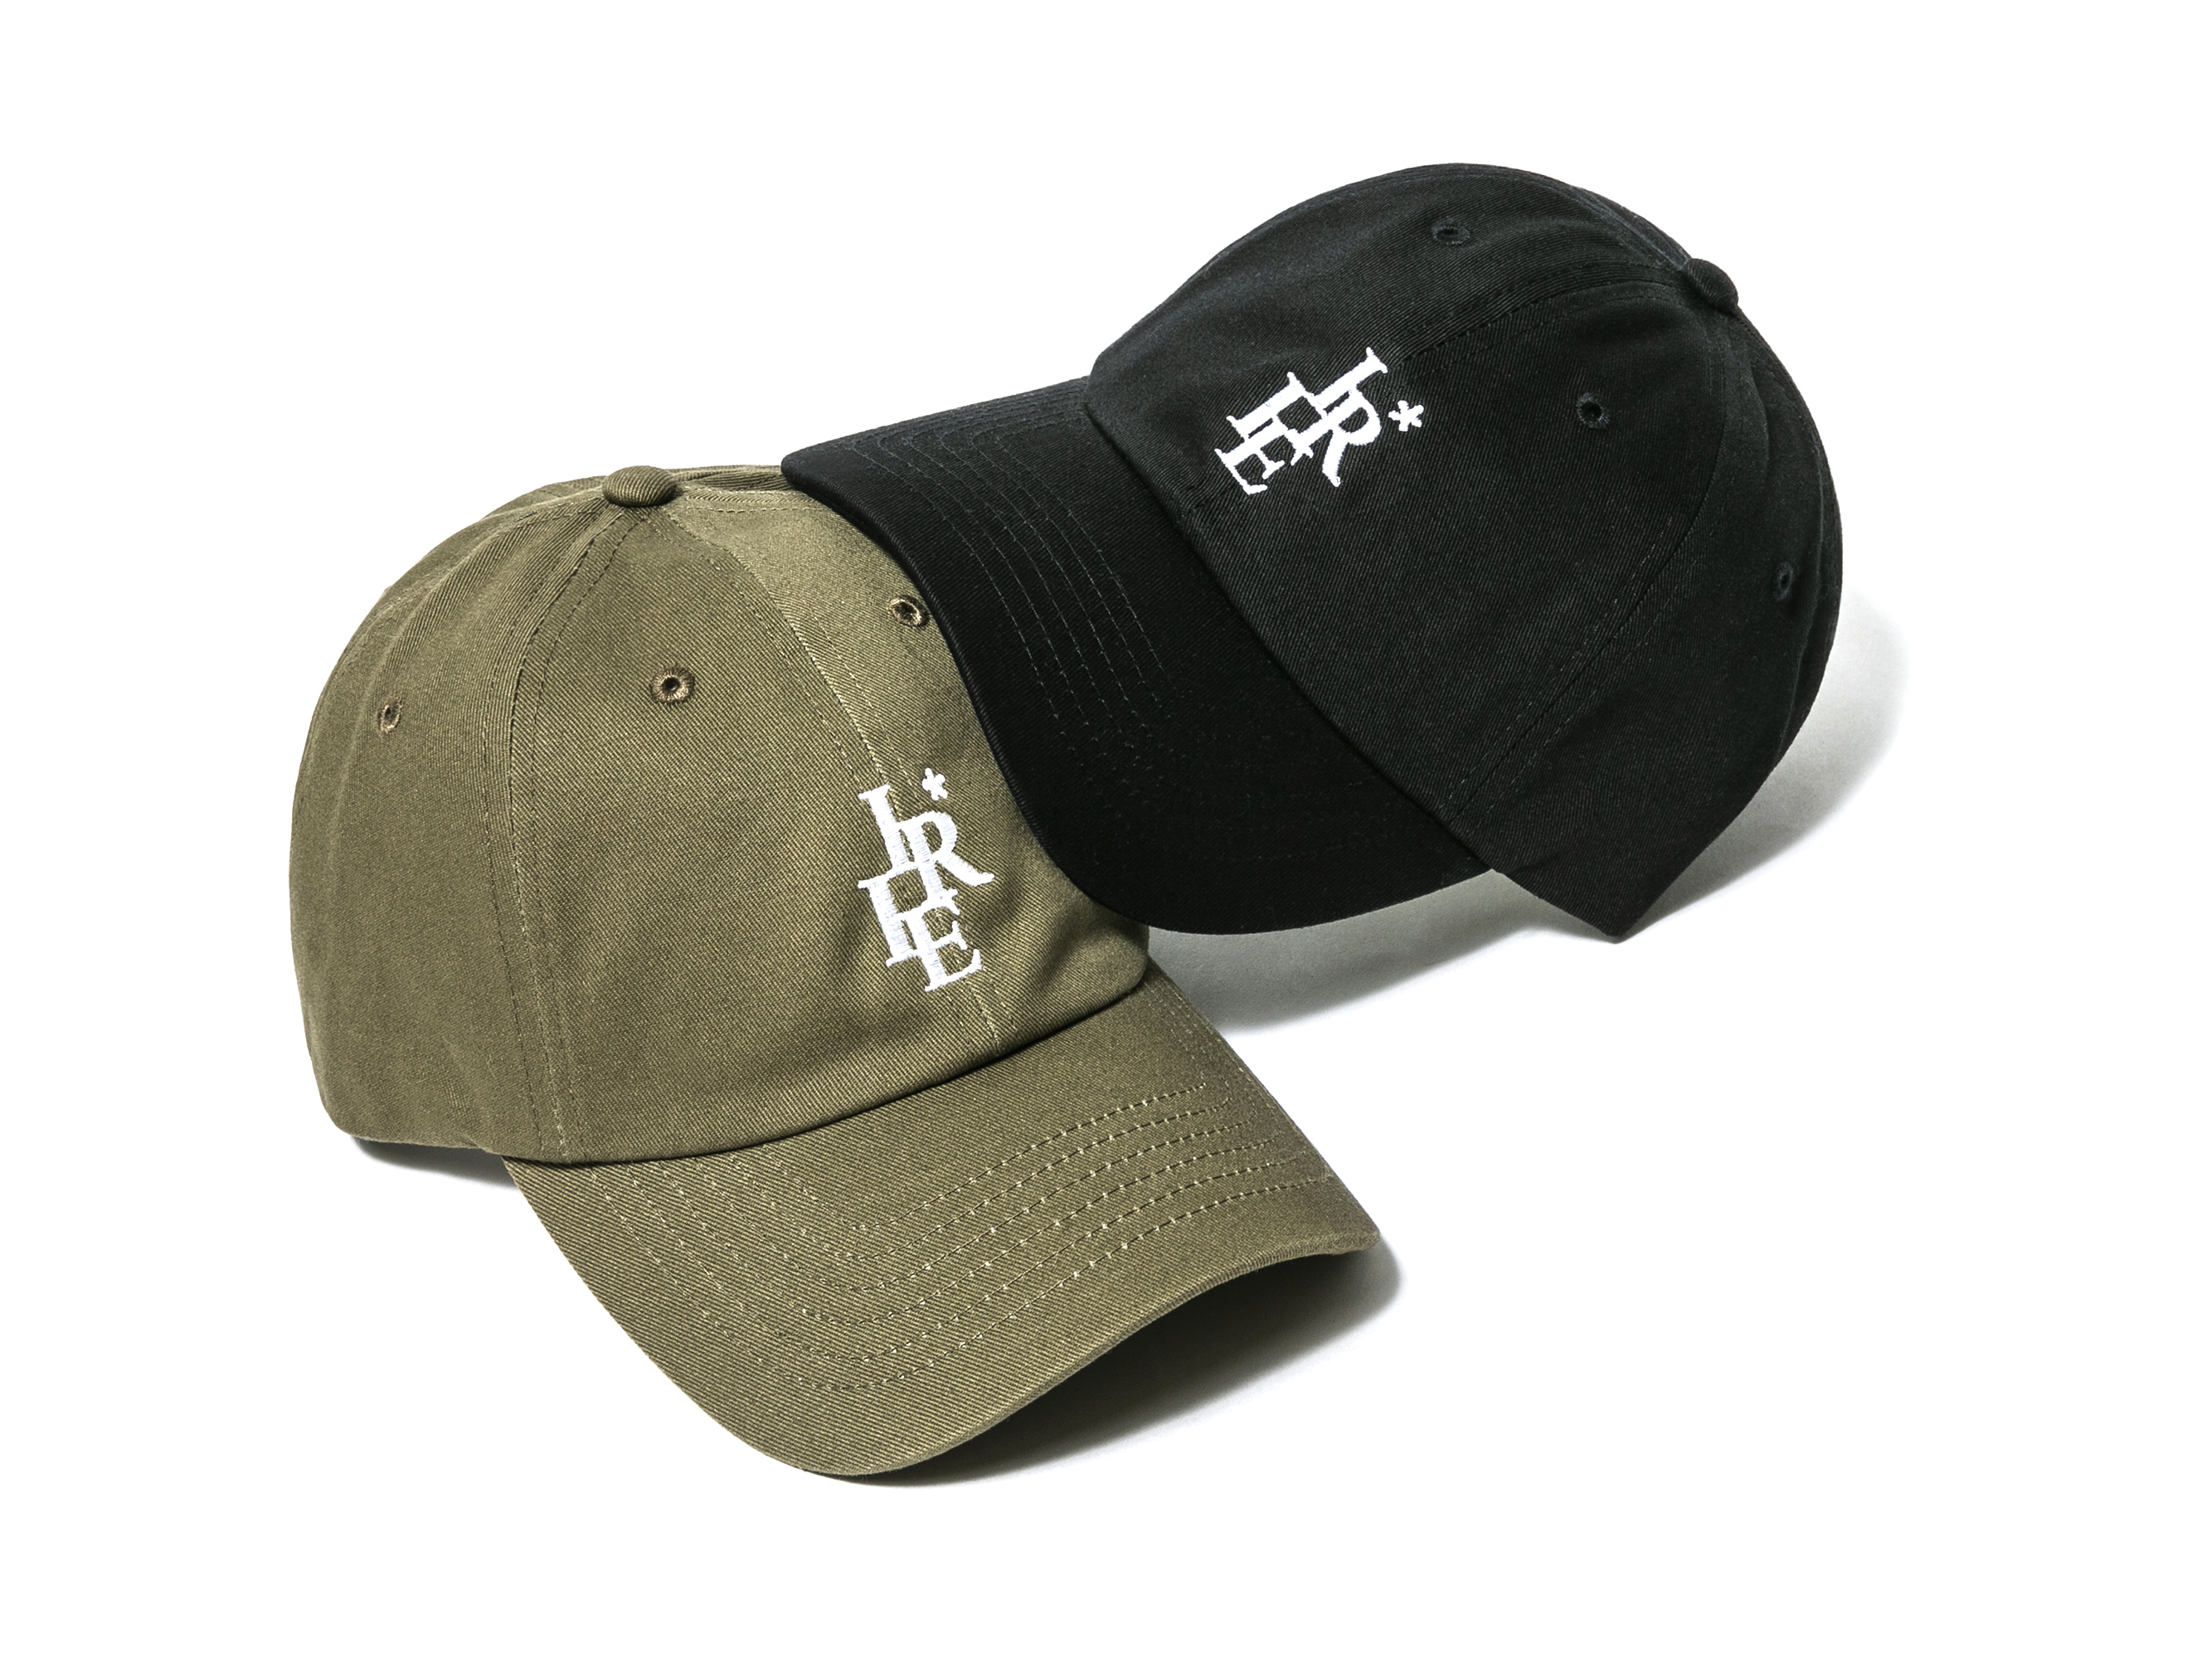 【20% OFF】IRIE STACK LOGO BALL CAP - IRIE by irielife